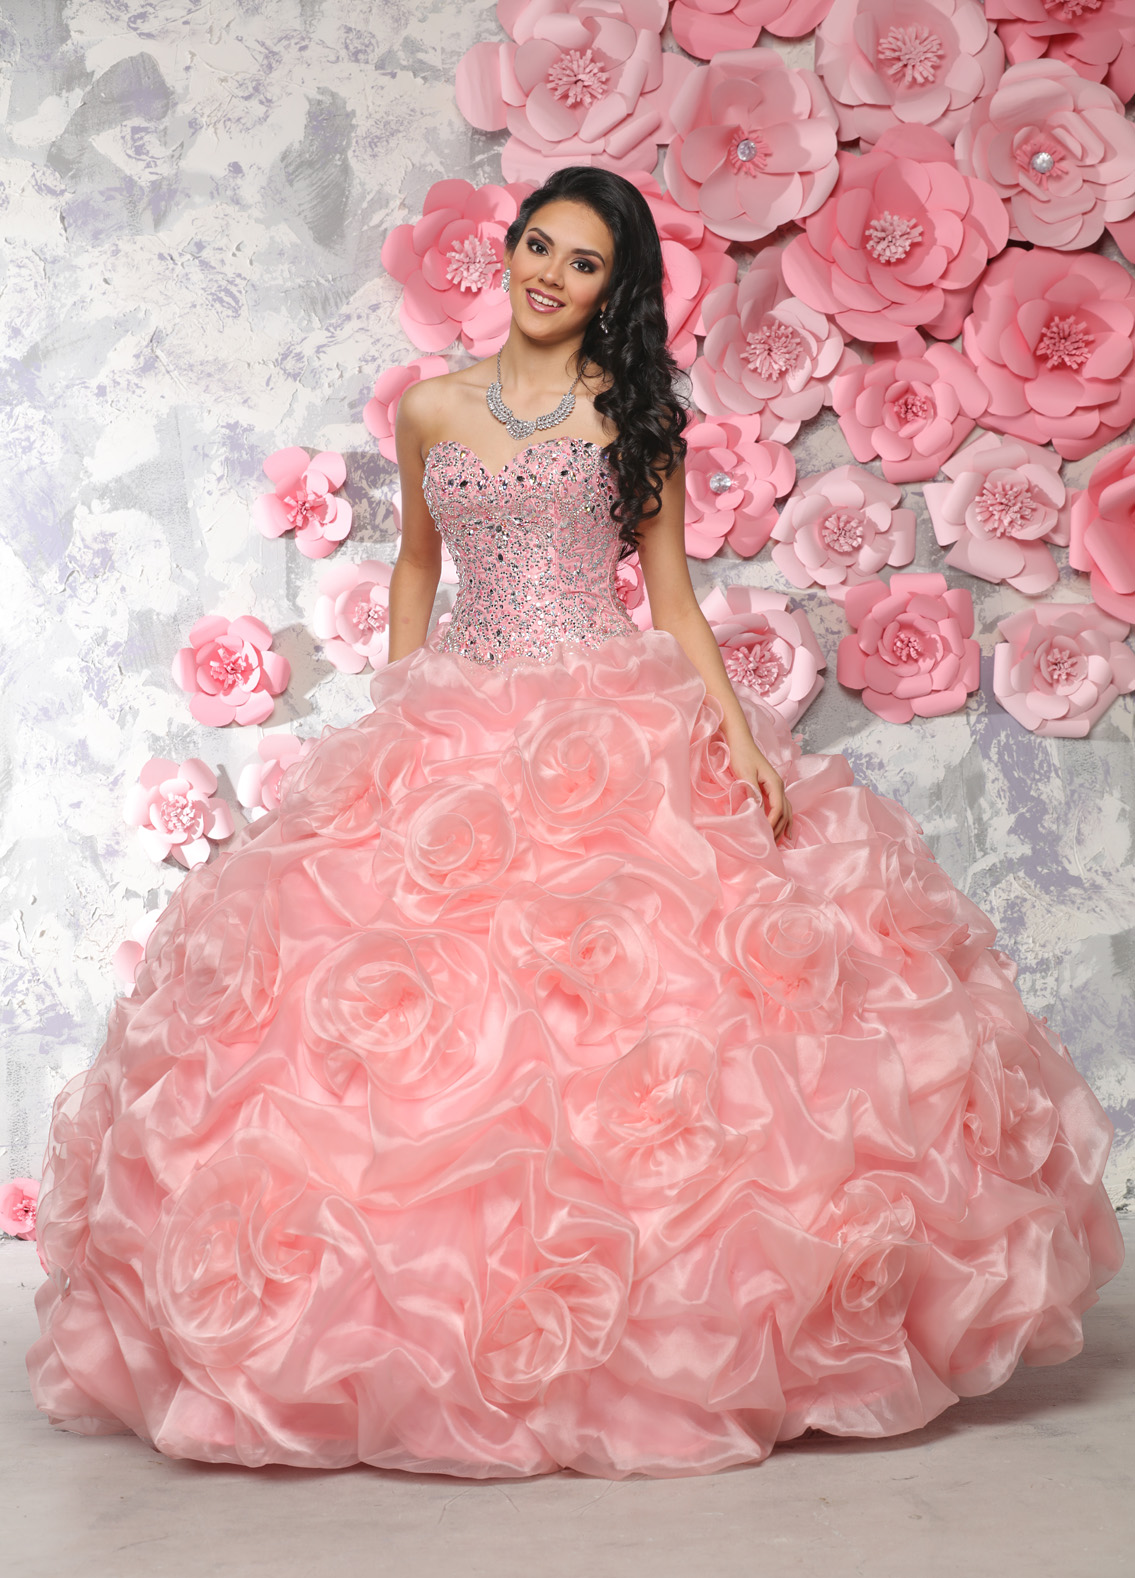 b1d75068c3ad8 Latest Quinceanera Dress Designs for the New Year Dress Vestidos